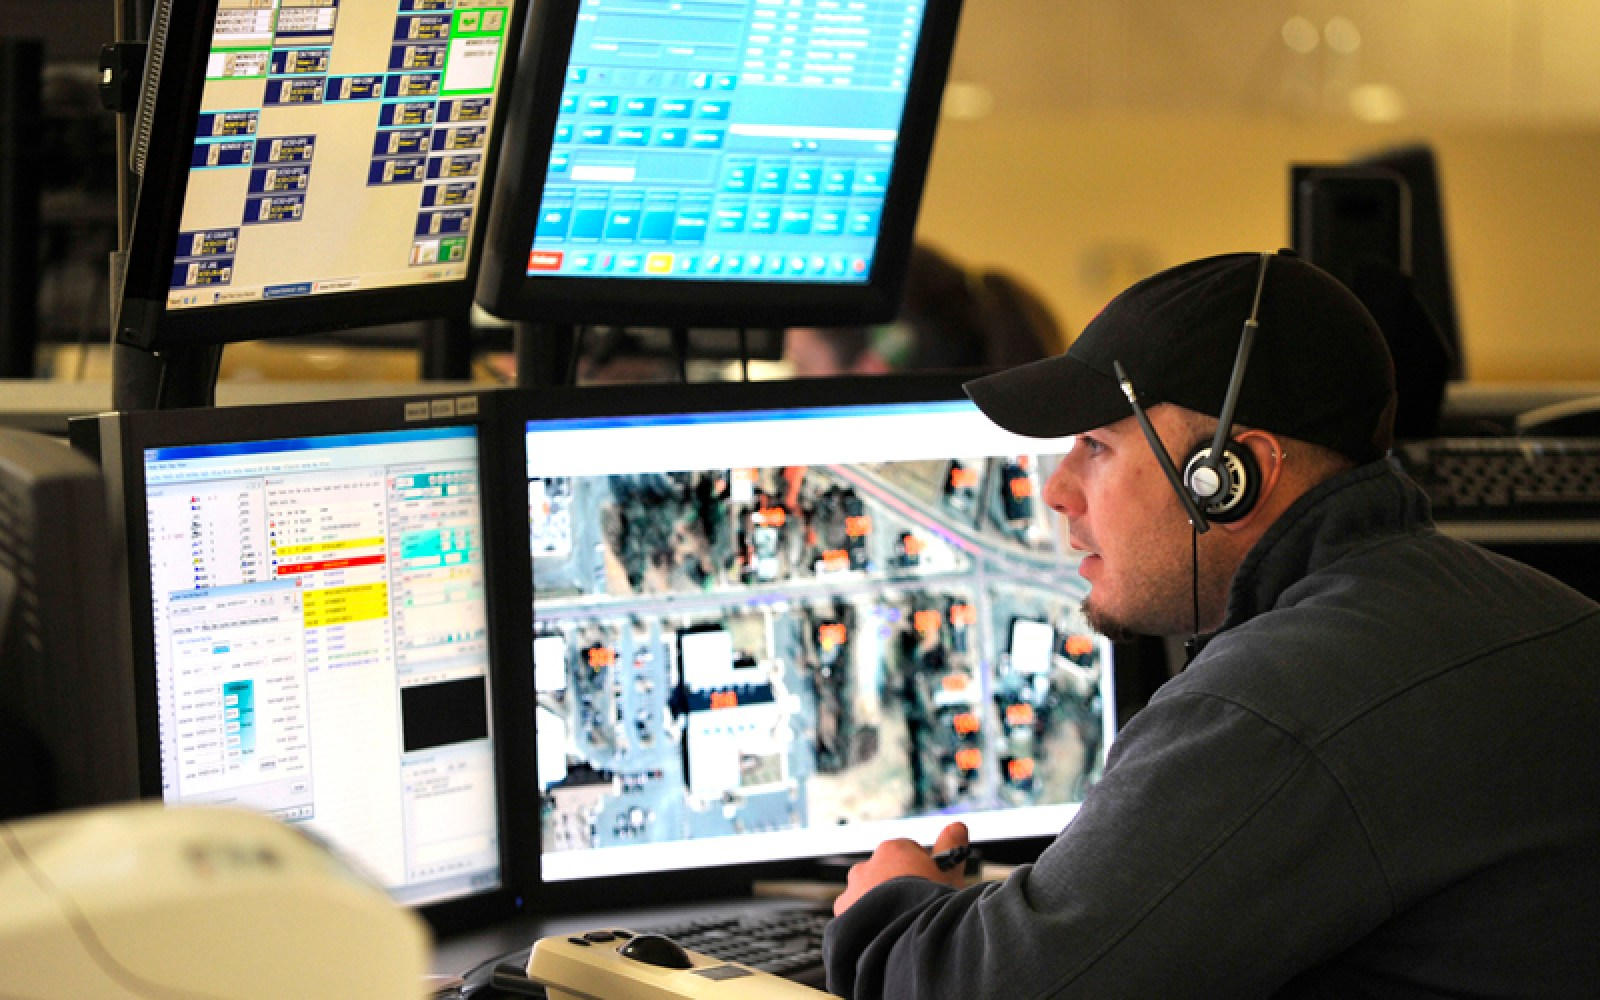 Teenager plays havoc with multiple 911 call centers trying to collect Apple bug bounty